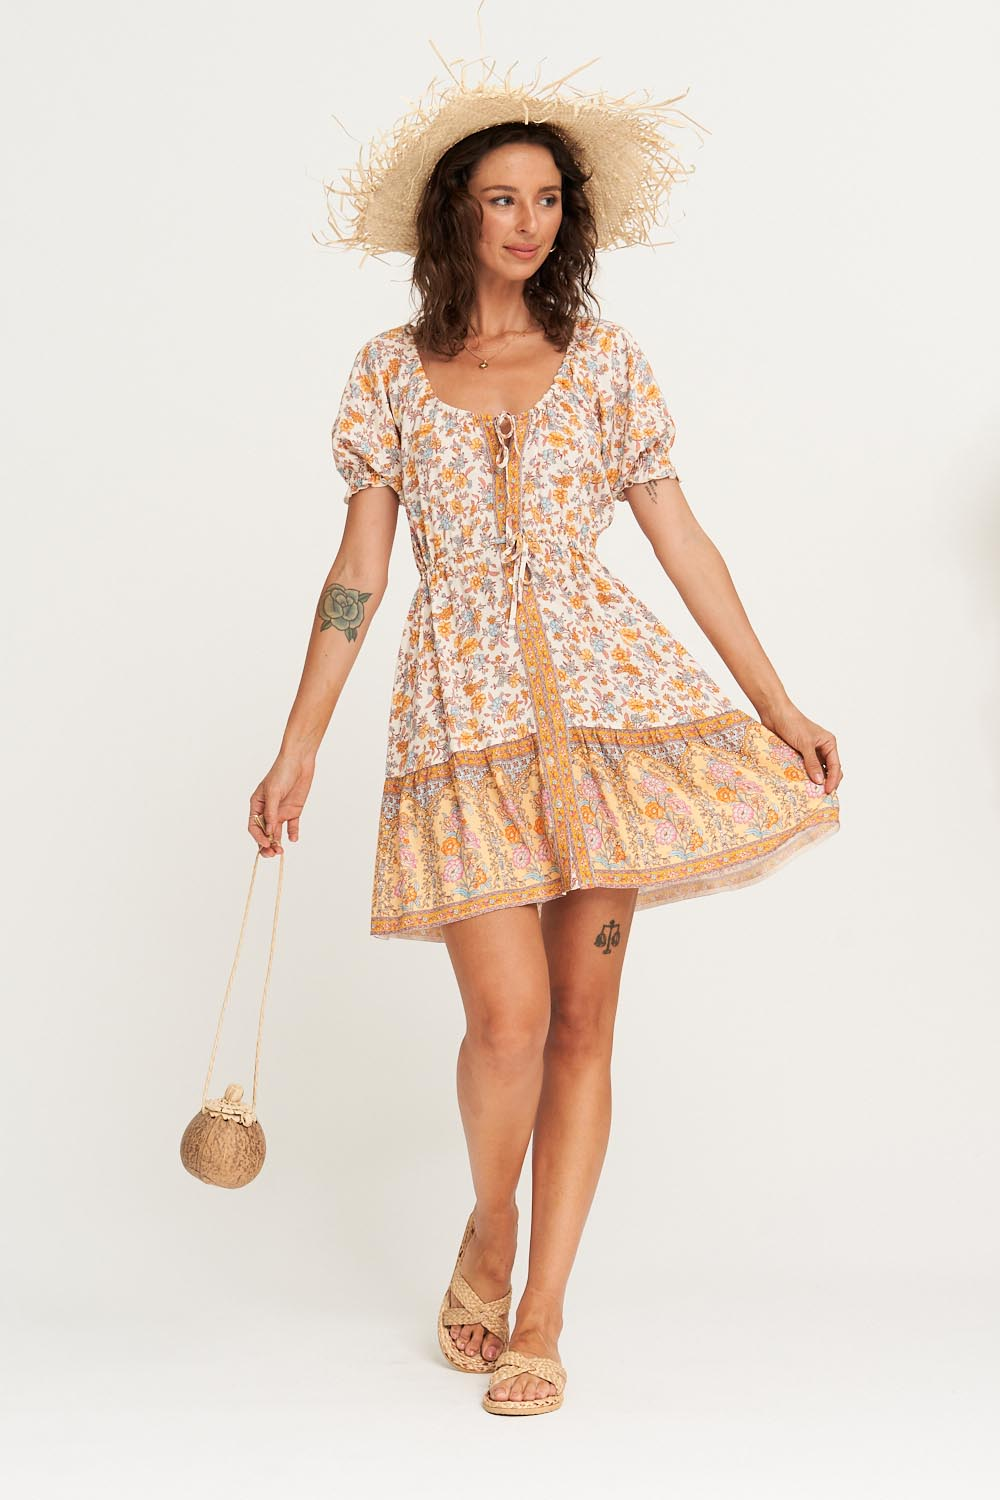 Honey Mini Dress in Coconut Cream